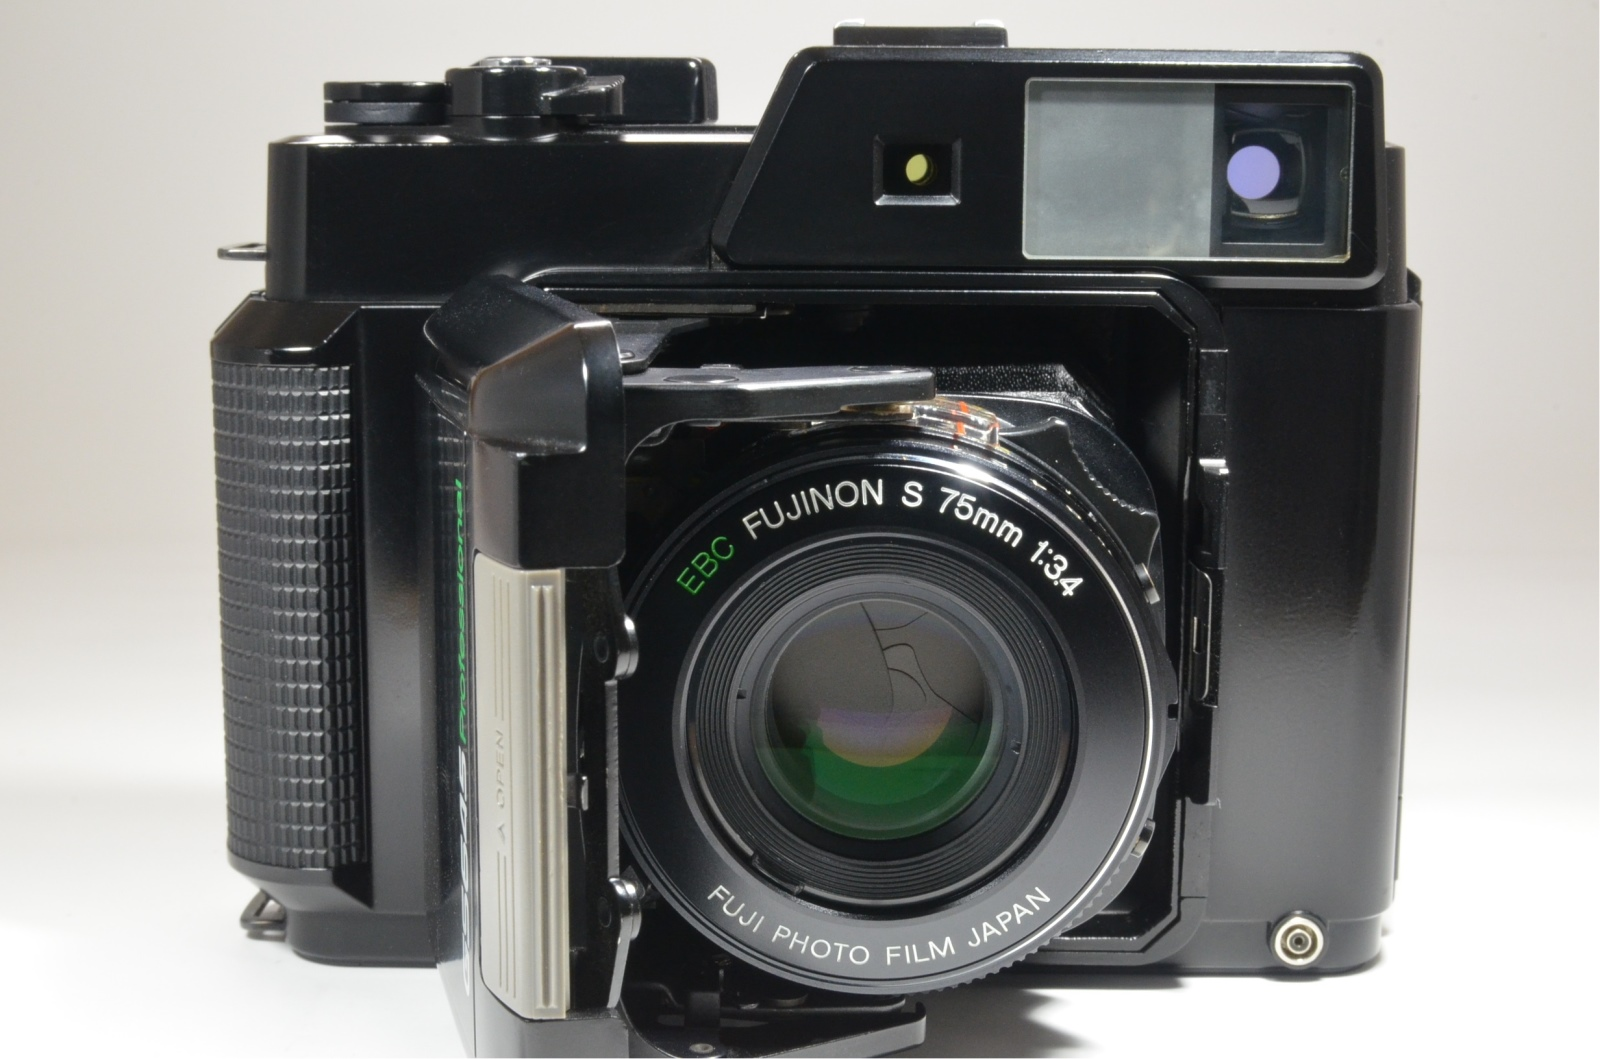 fujifilm fujica gs645 film camera 75mm f3.4 with lens hood from japan